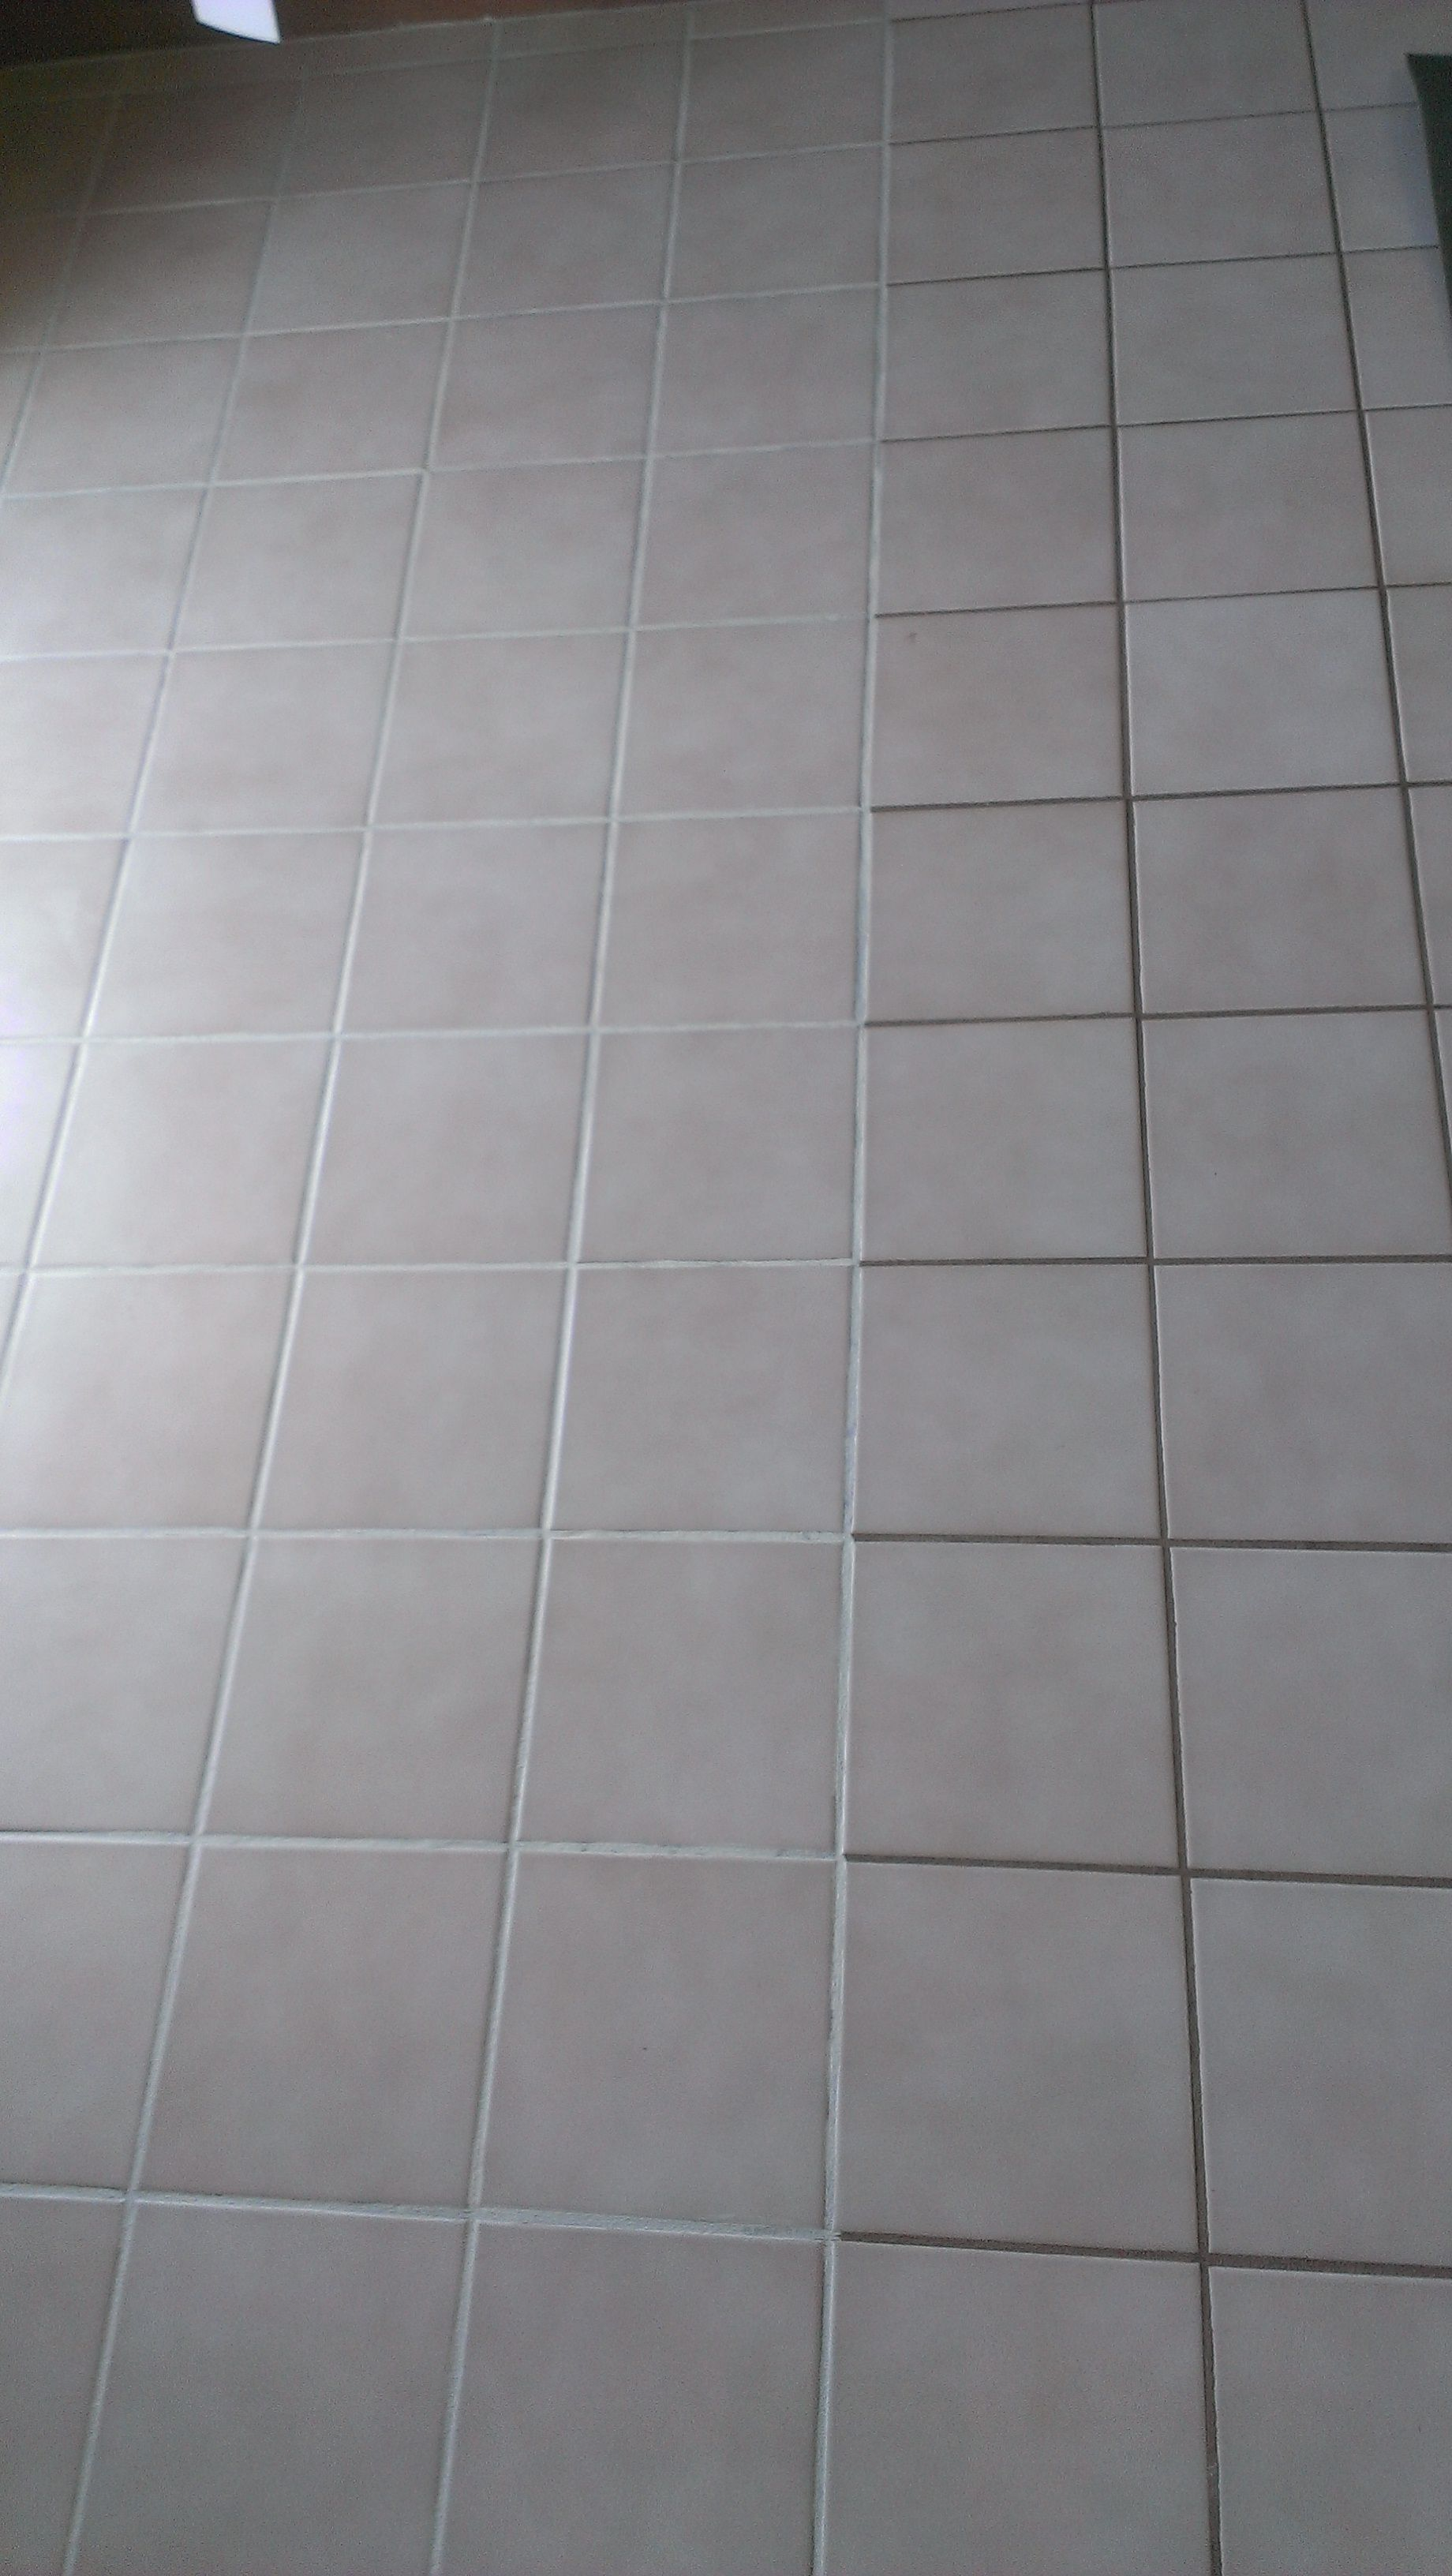 Polyblend Antique White Grout Sealercolorant (Paint) Very Pretty, Very Time